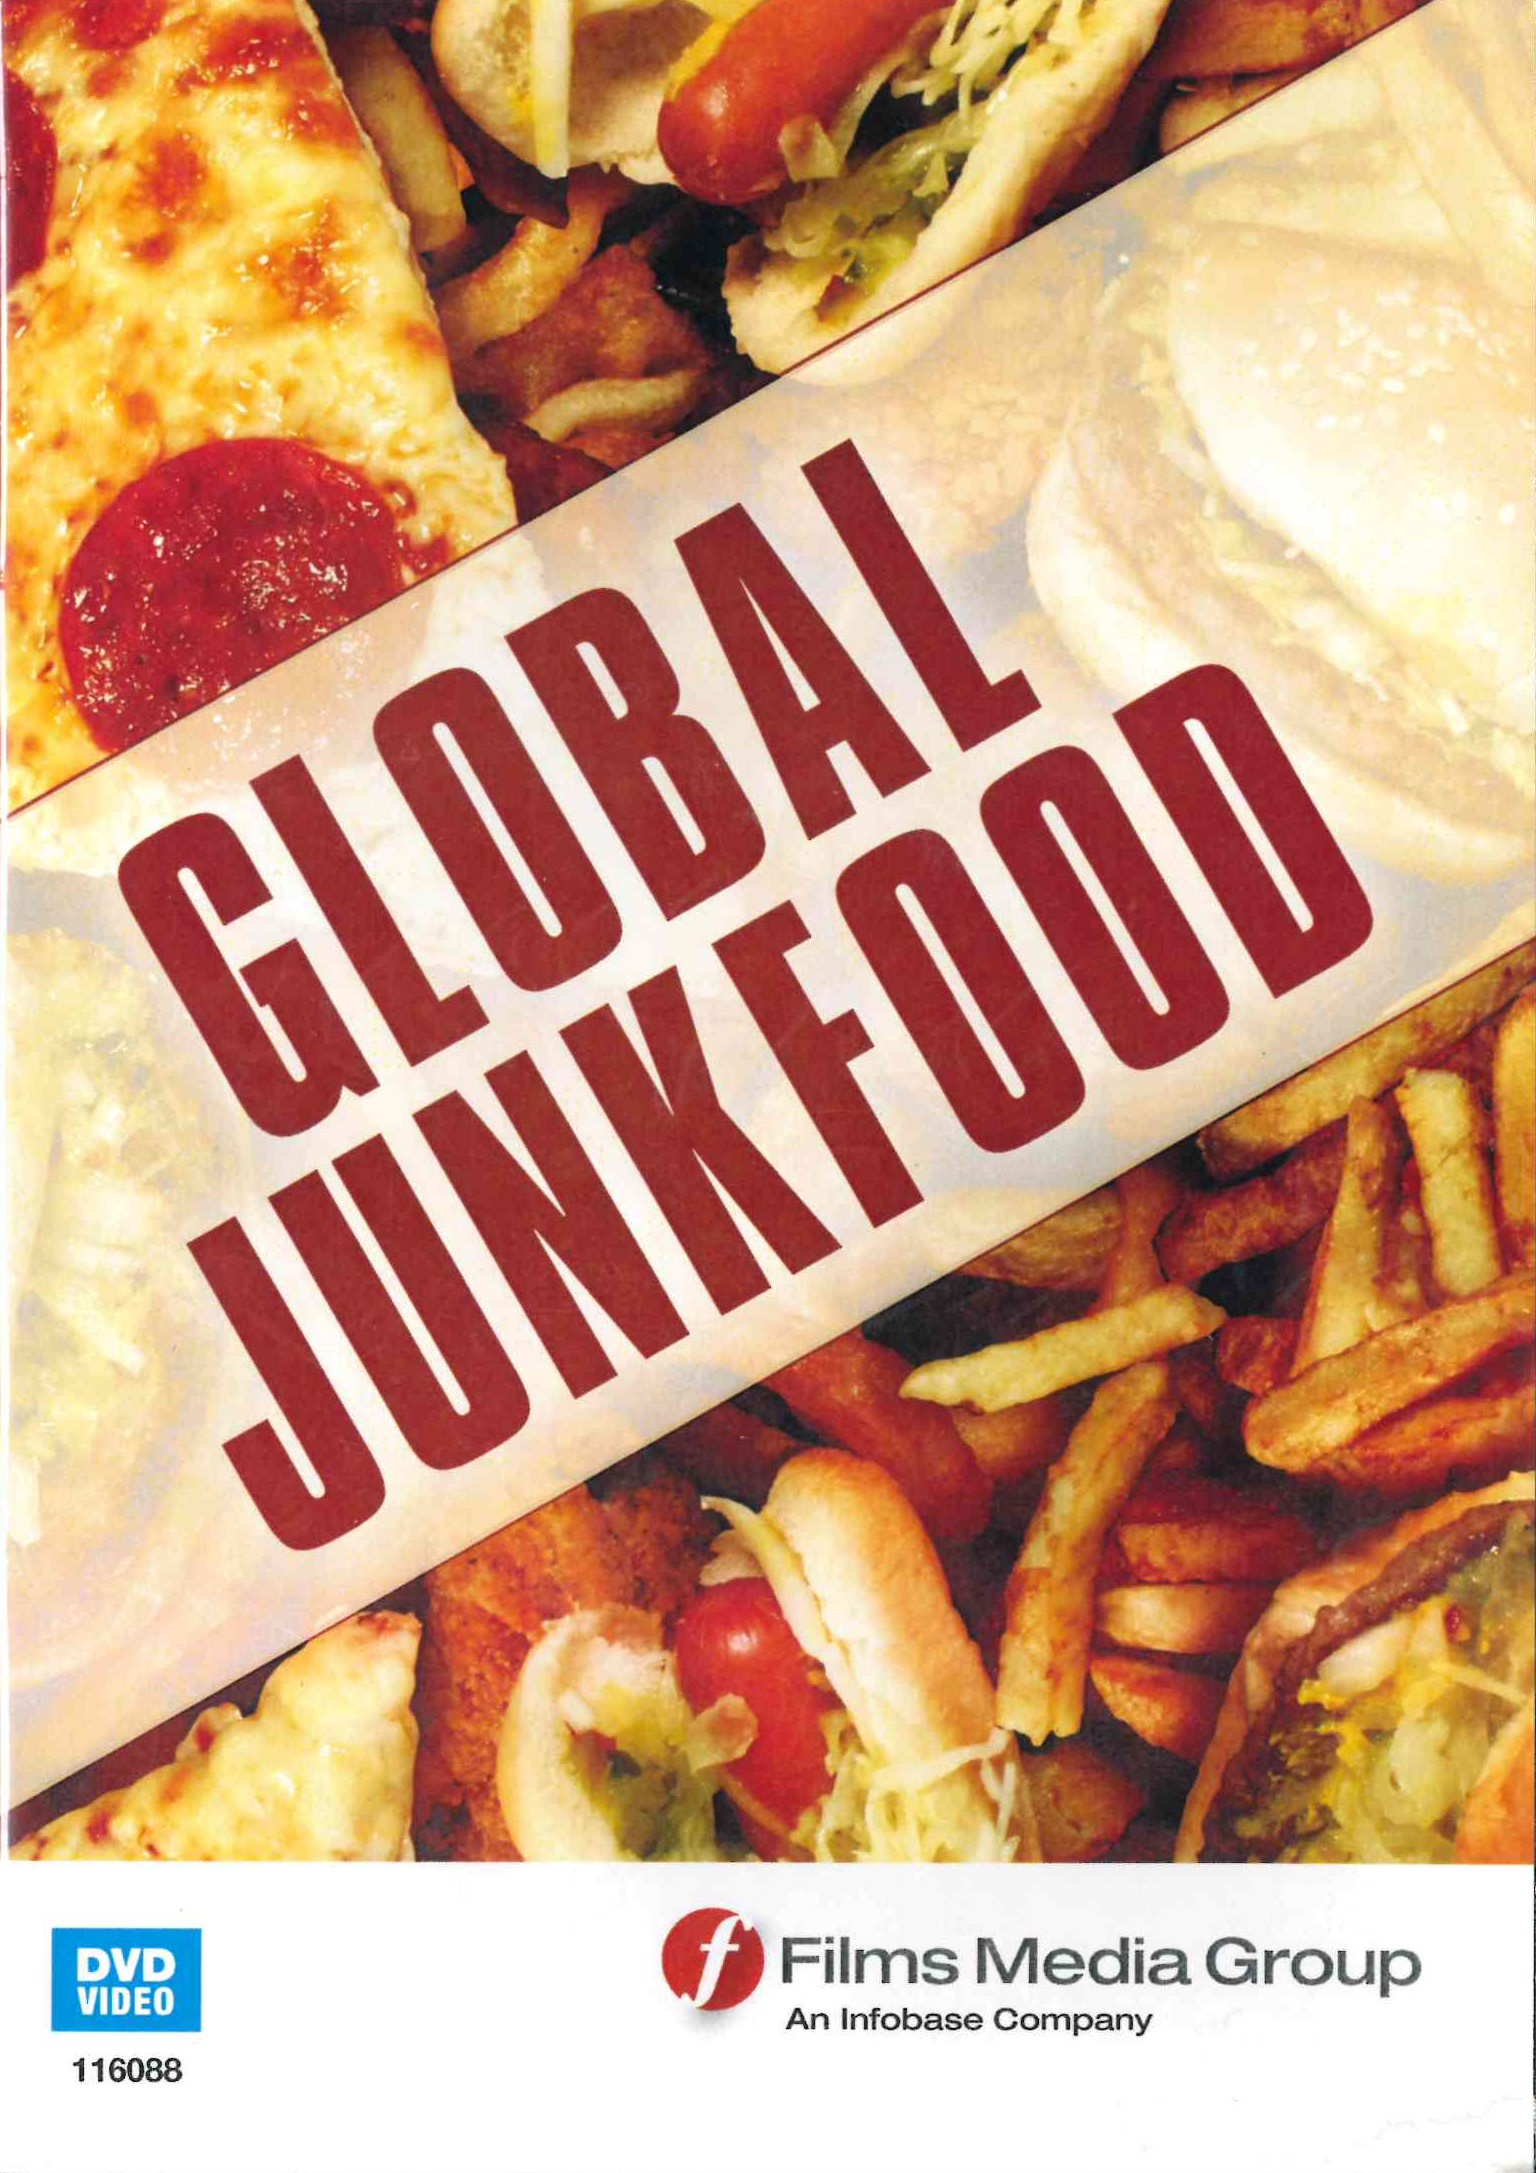 Global junkfood